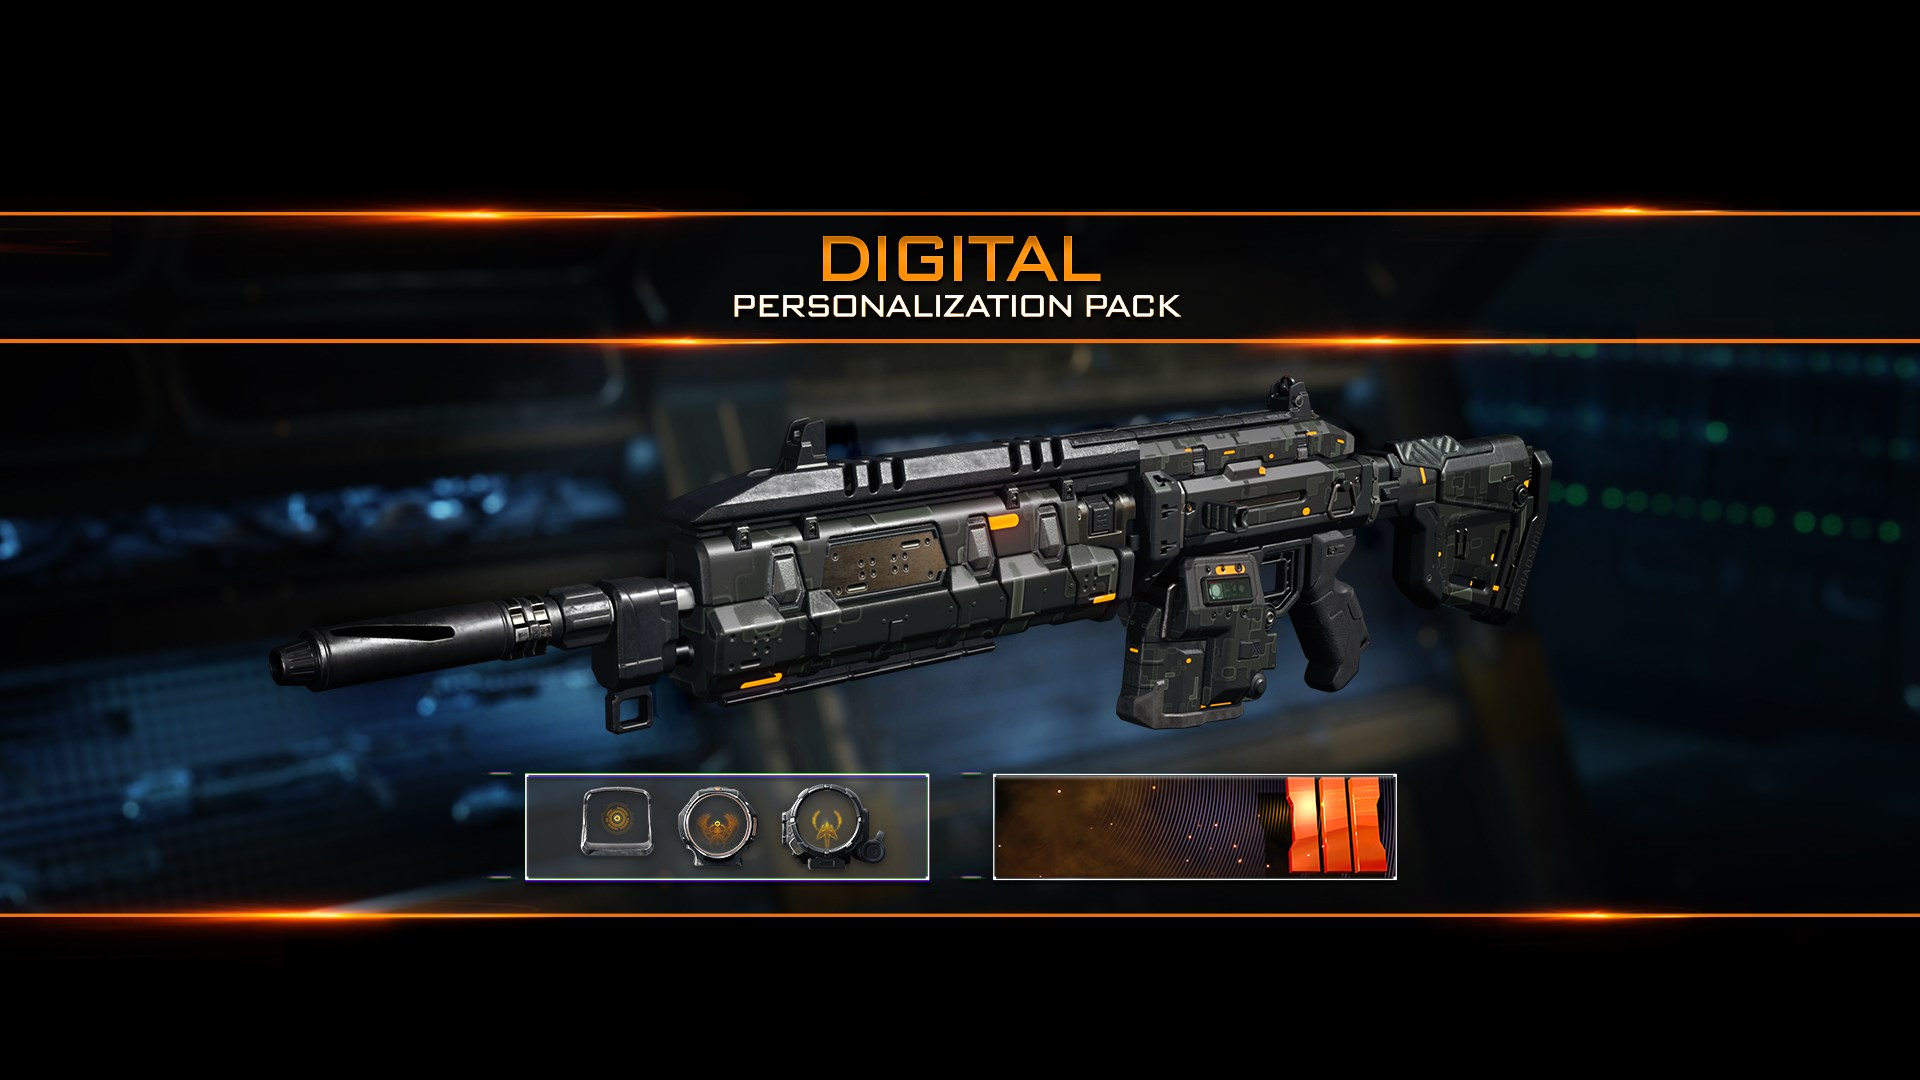 Black Ops III - Digital Personalization Pack